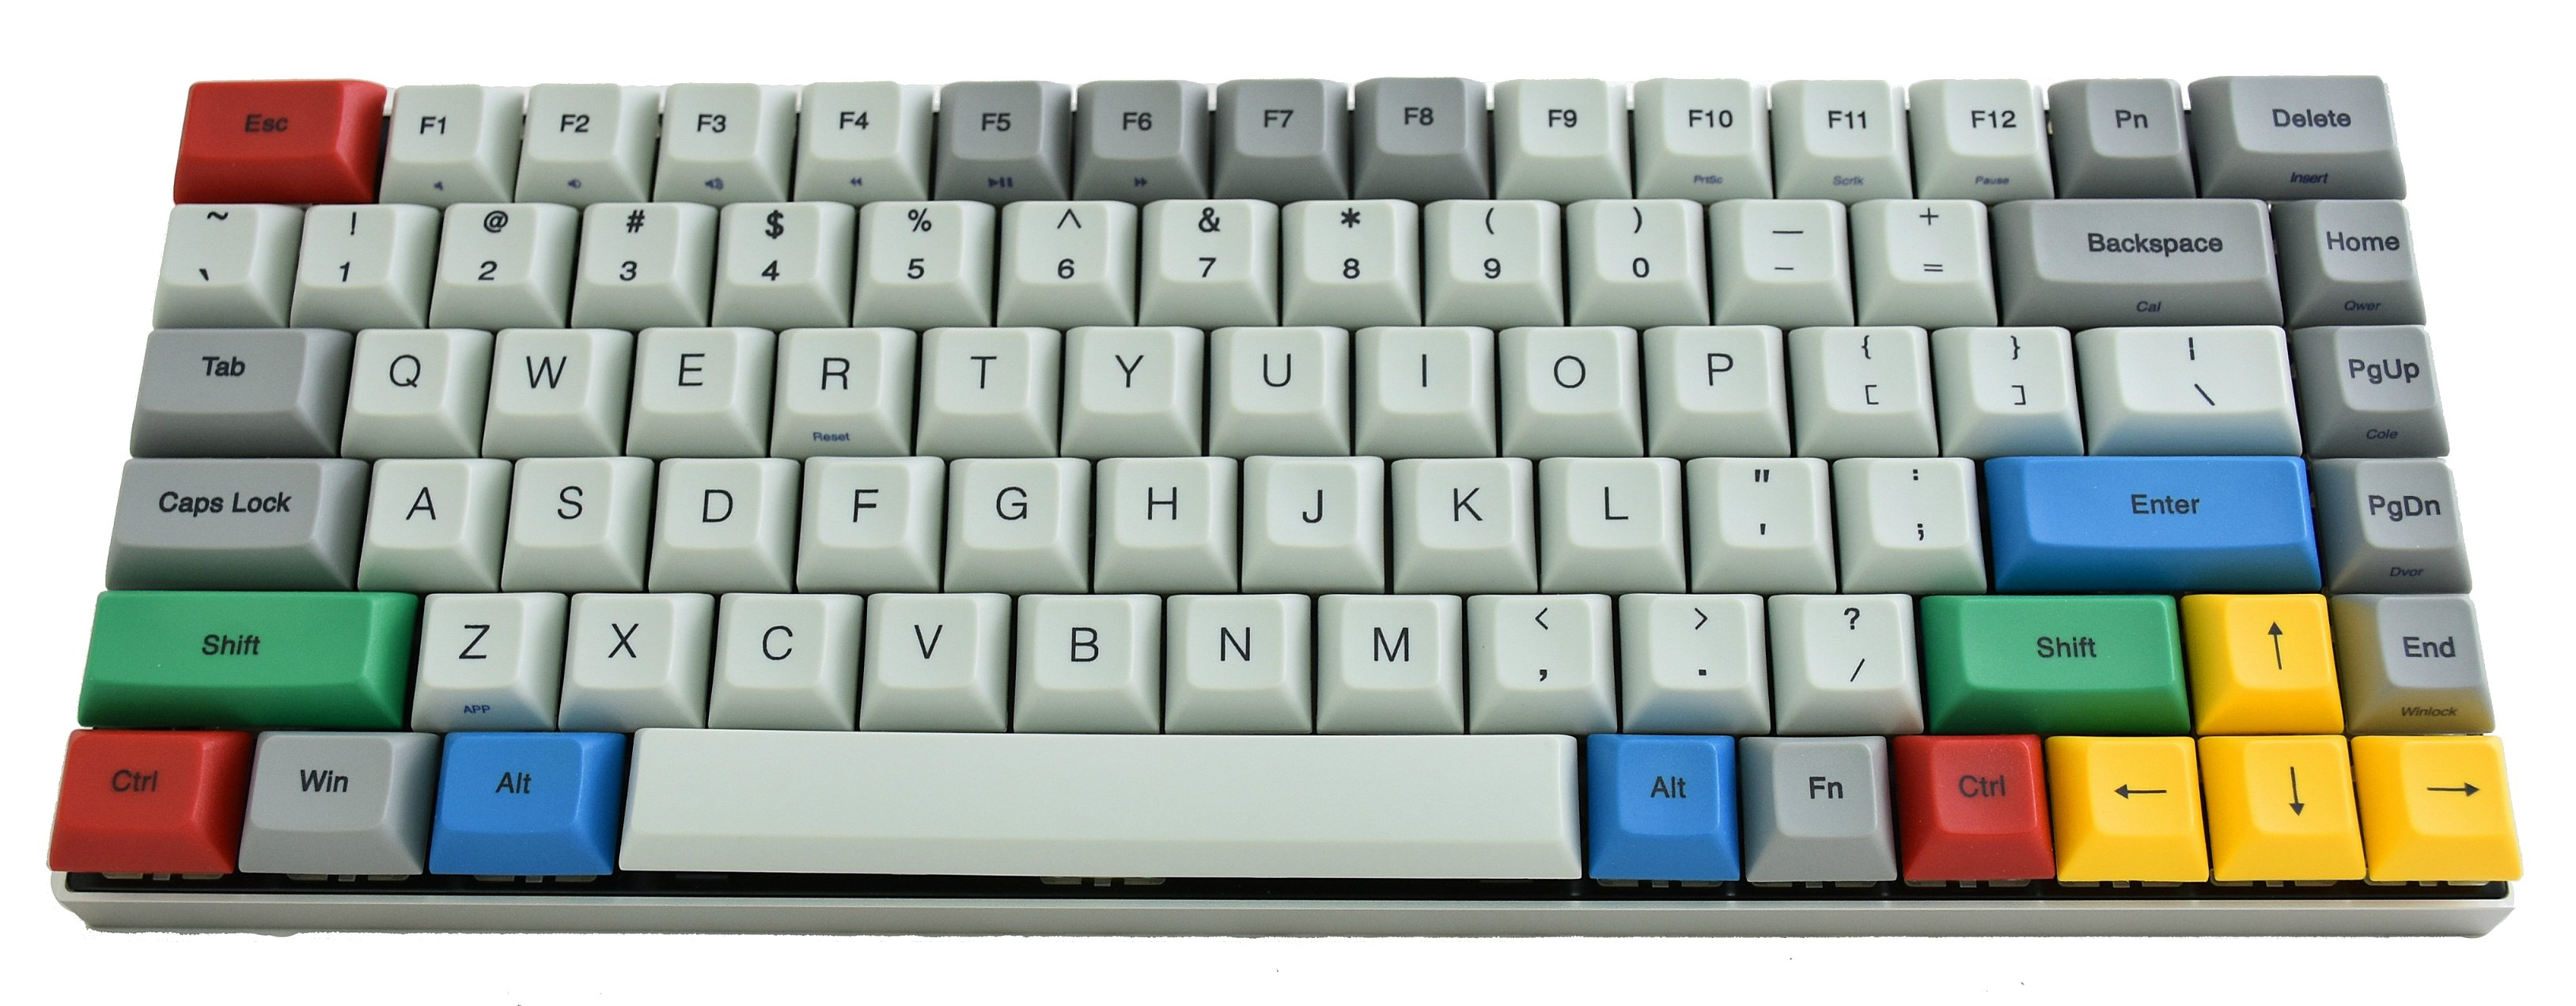 Vortex New 75 (Race 3) keyboard